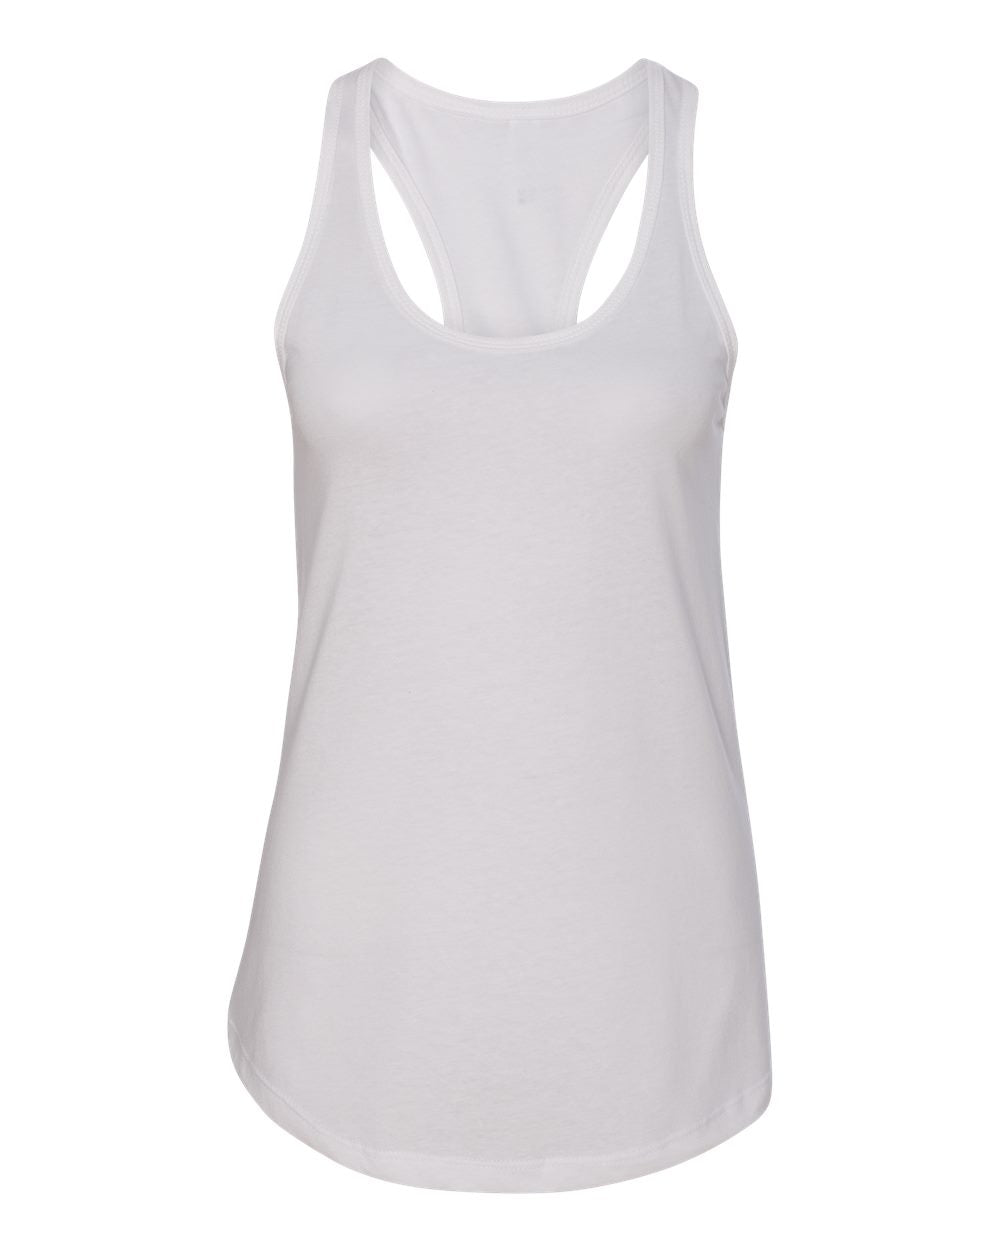 Women's White Tanks